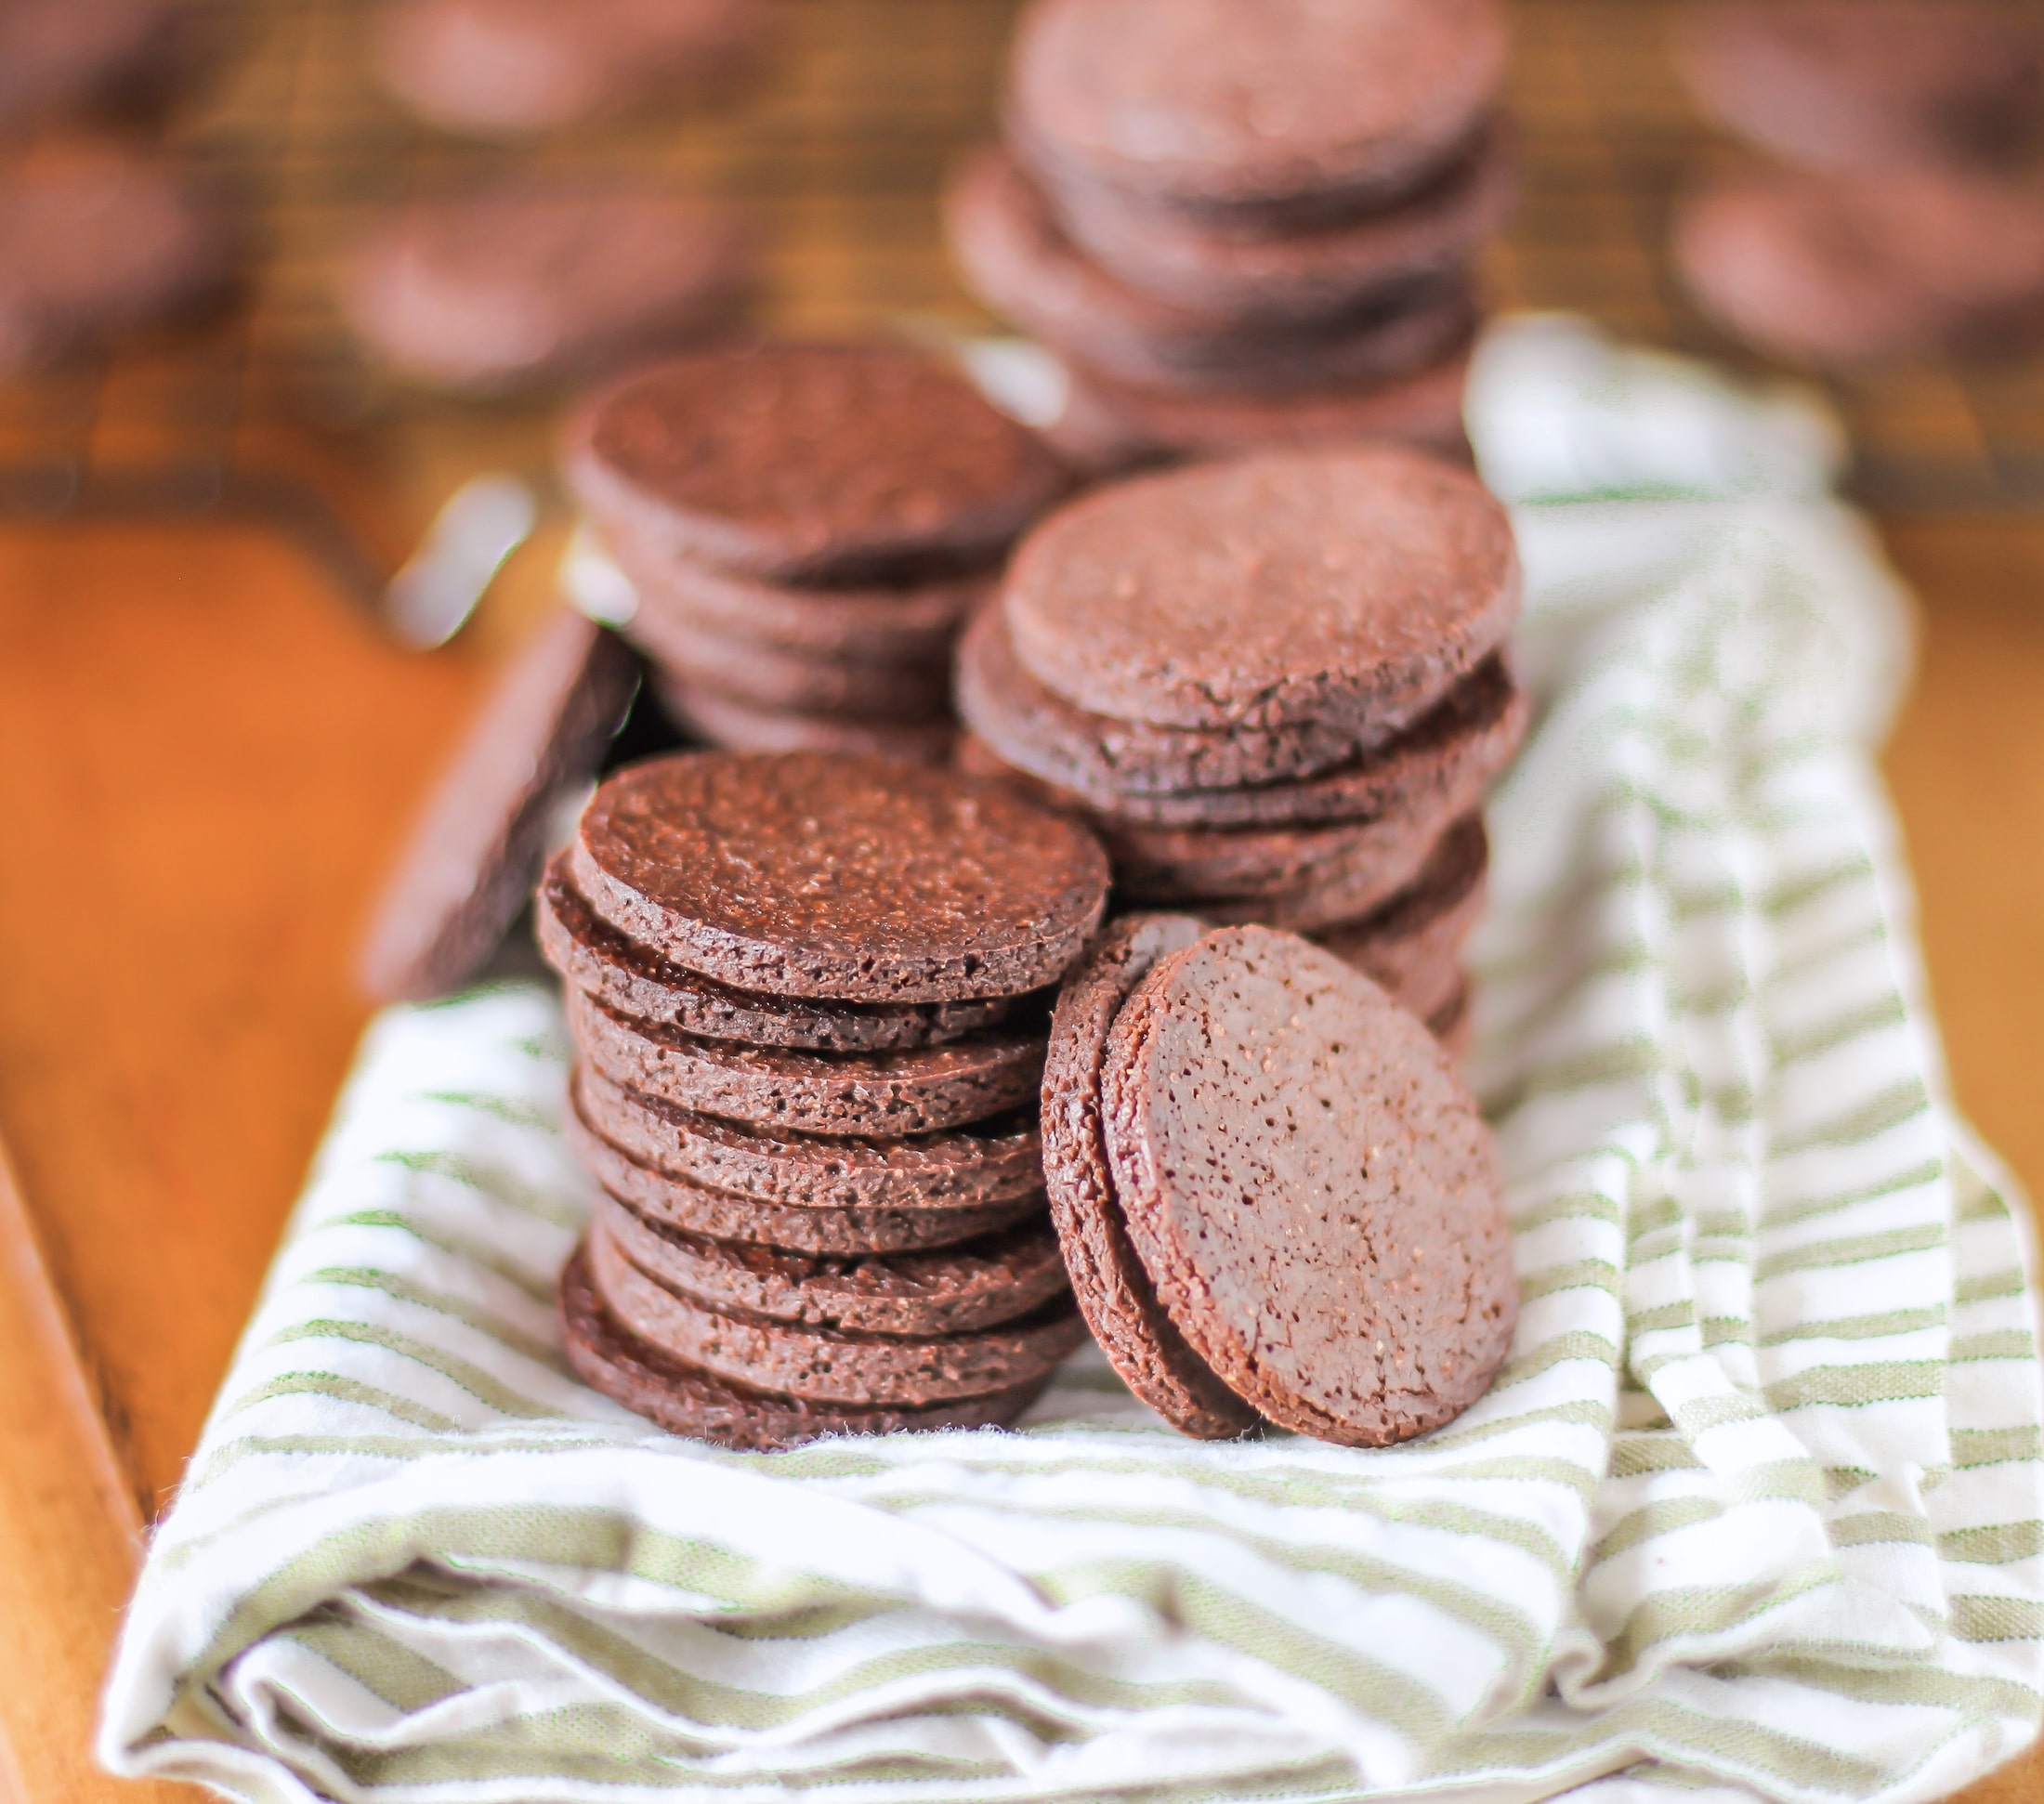 These Healthy Chocolate Quinoa Crackers are super easy to make with just a few ingredients. Plus, they're sugar free, high fiber, gluten free, and vegan!